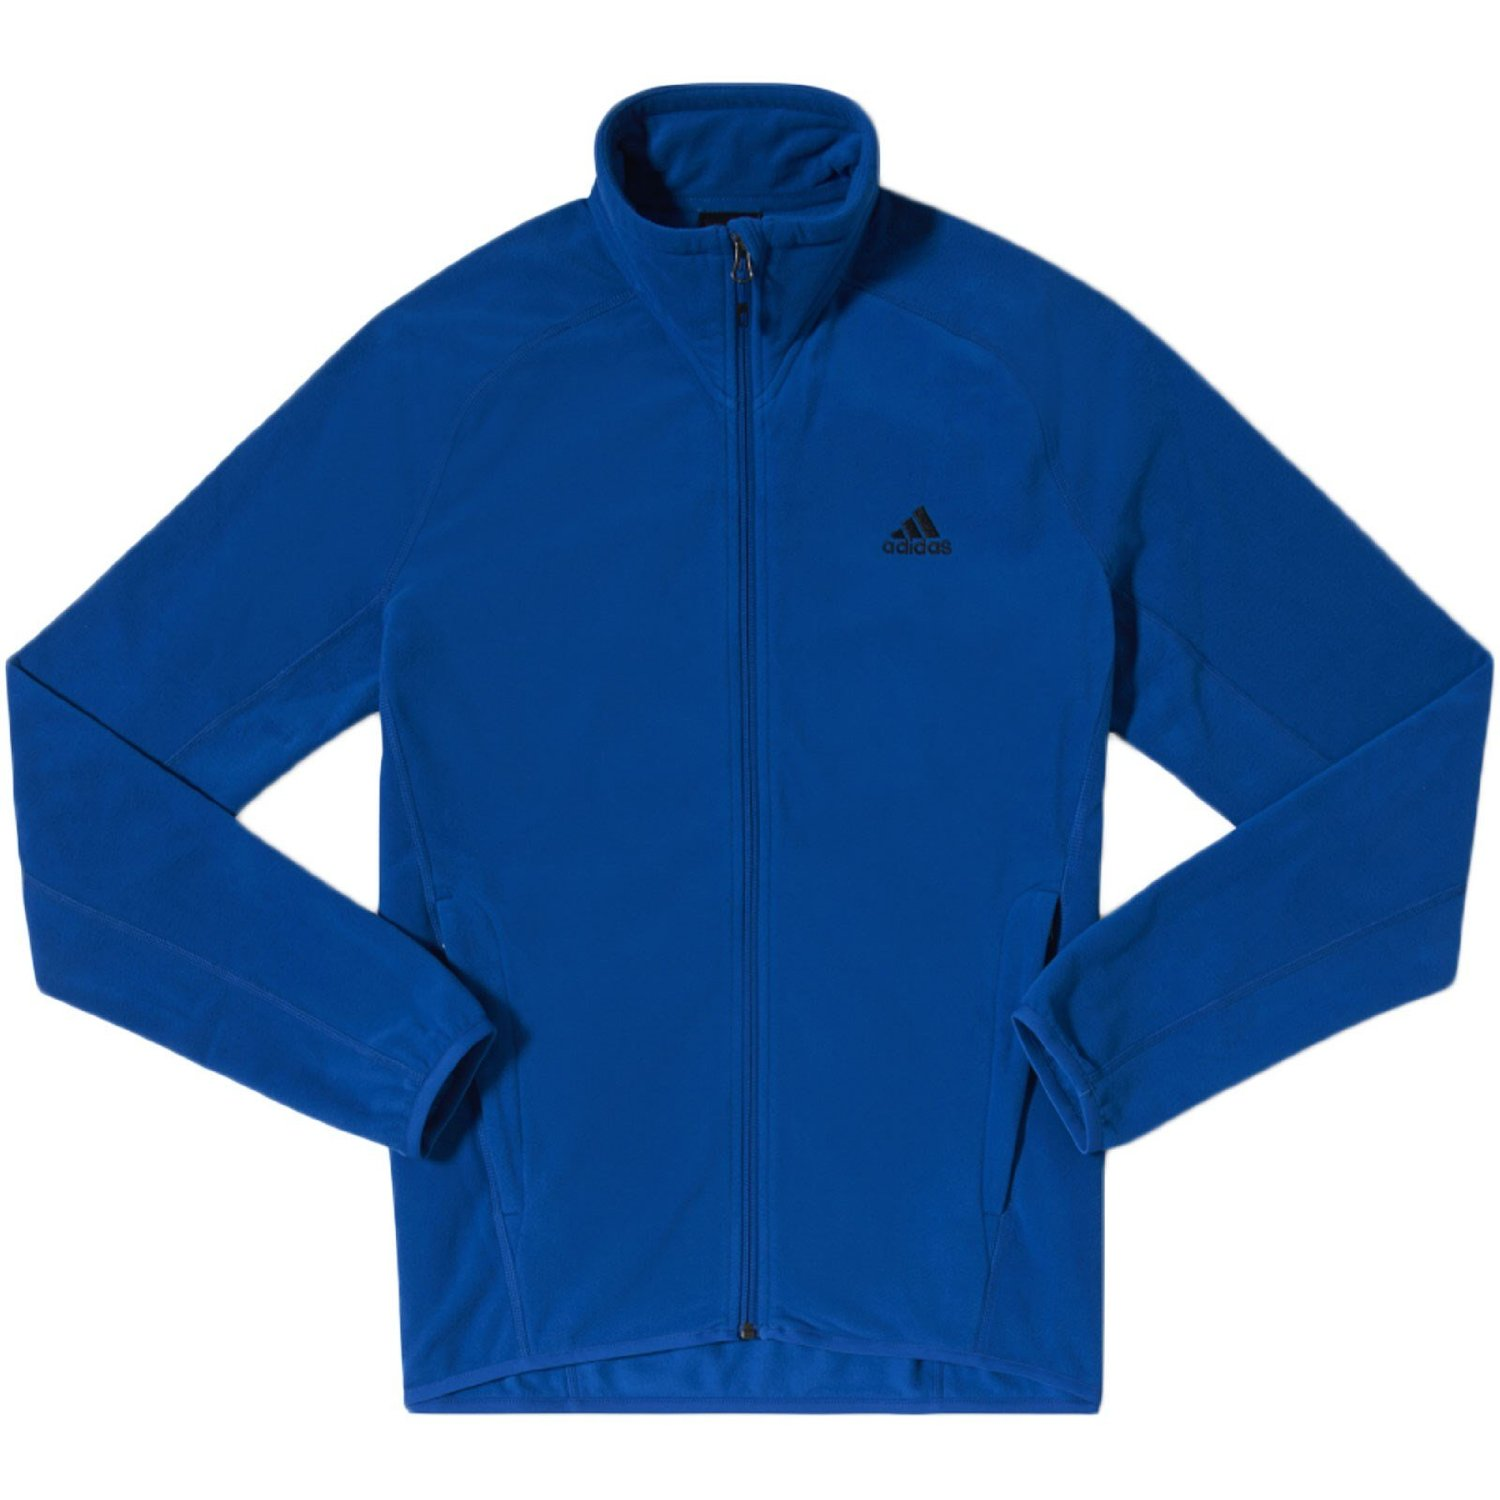 Image of Adidas - Mens Hiking Fleece Jacket